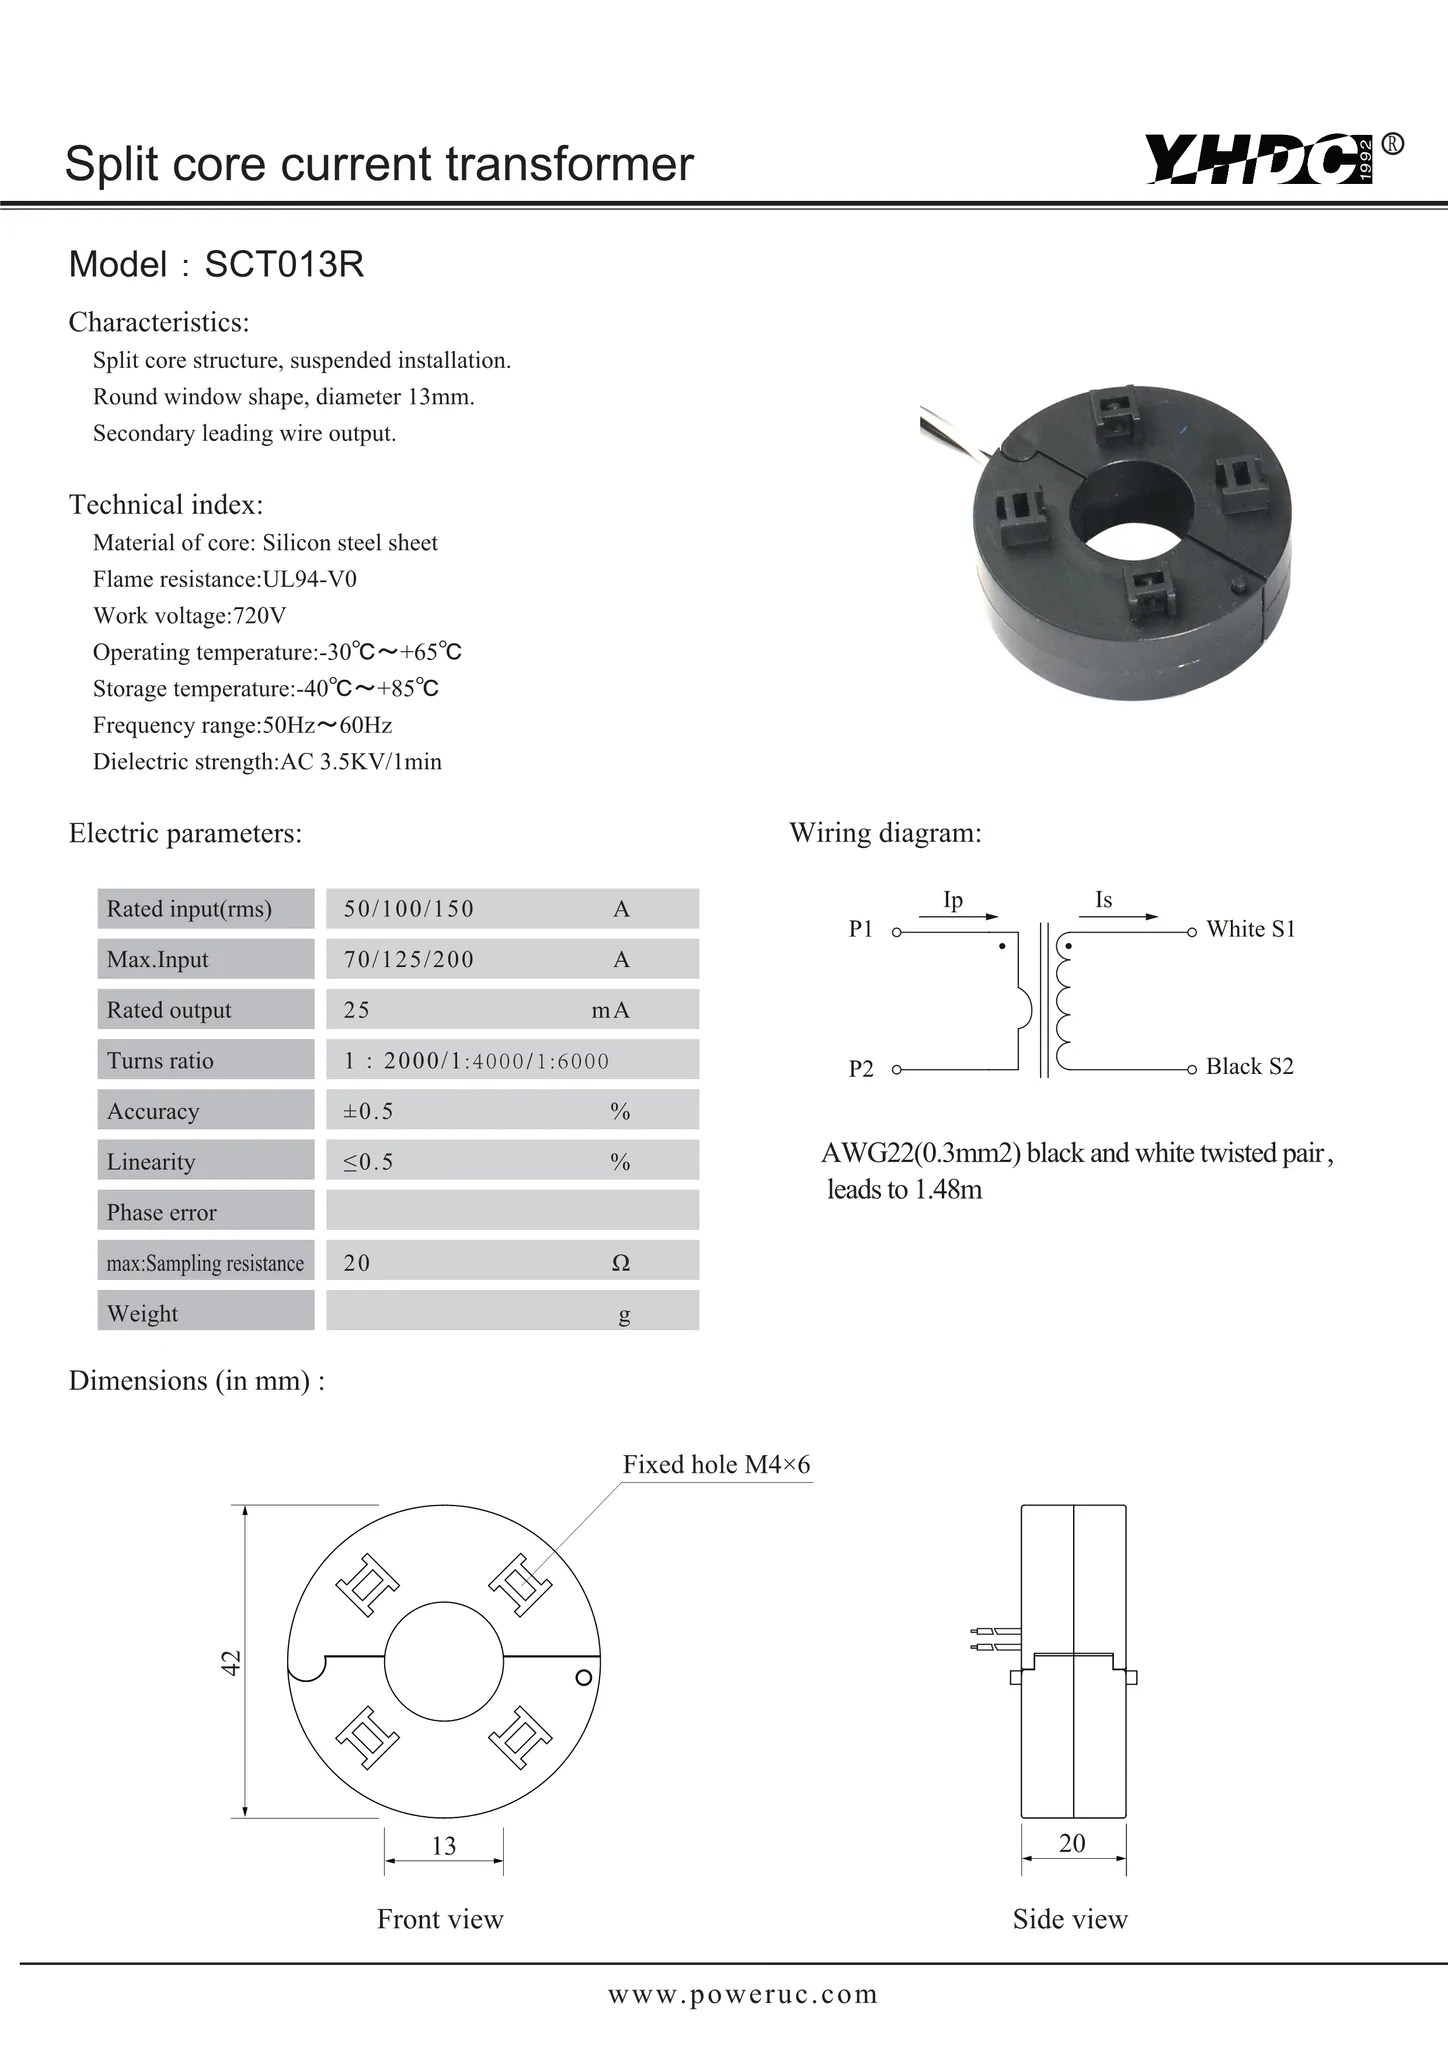 small resolution of split core current transformer sct013r rated input 50a 100a 150a rated output 25ma